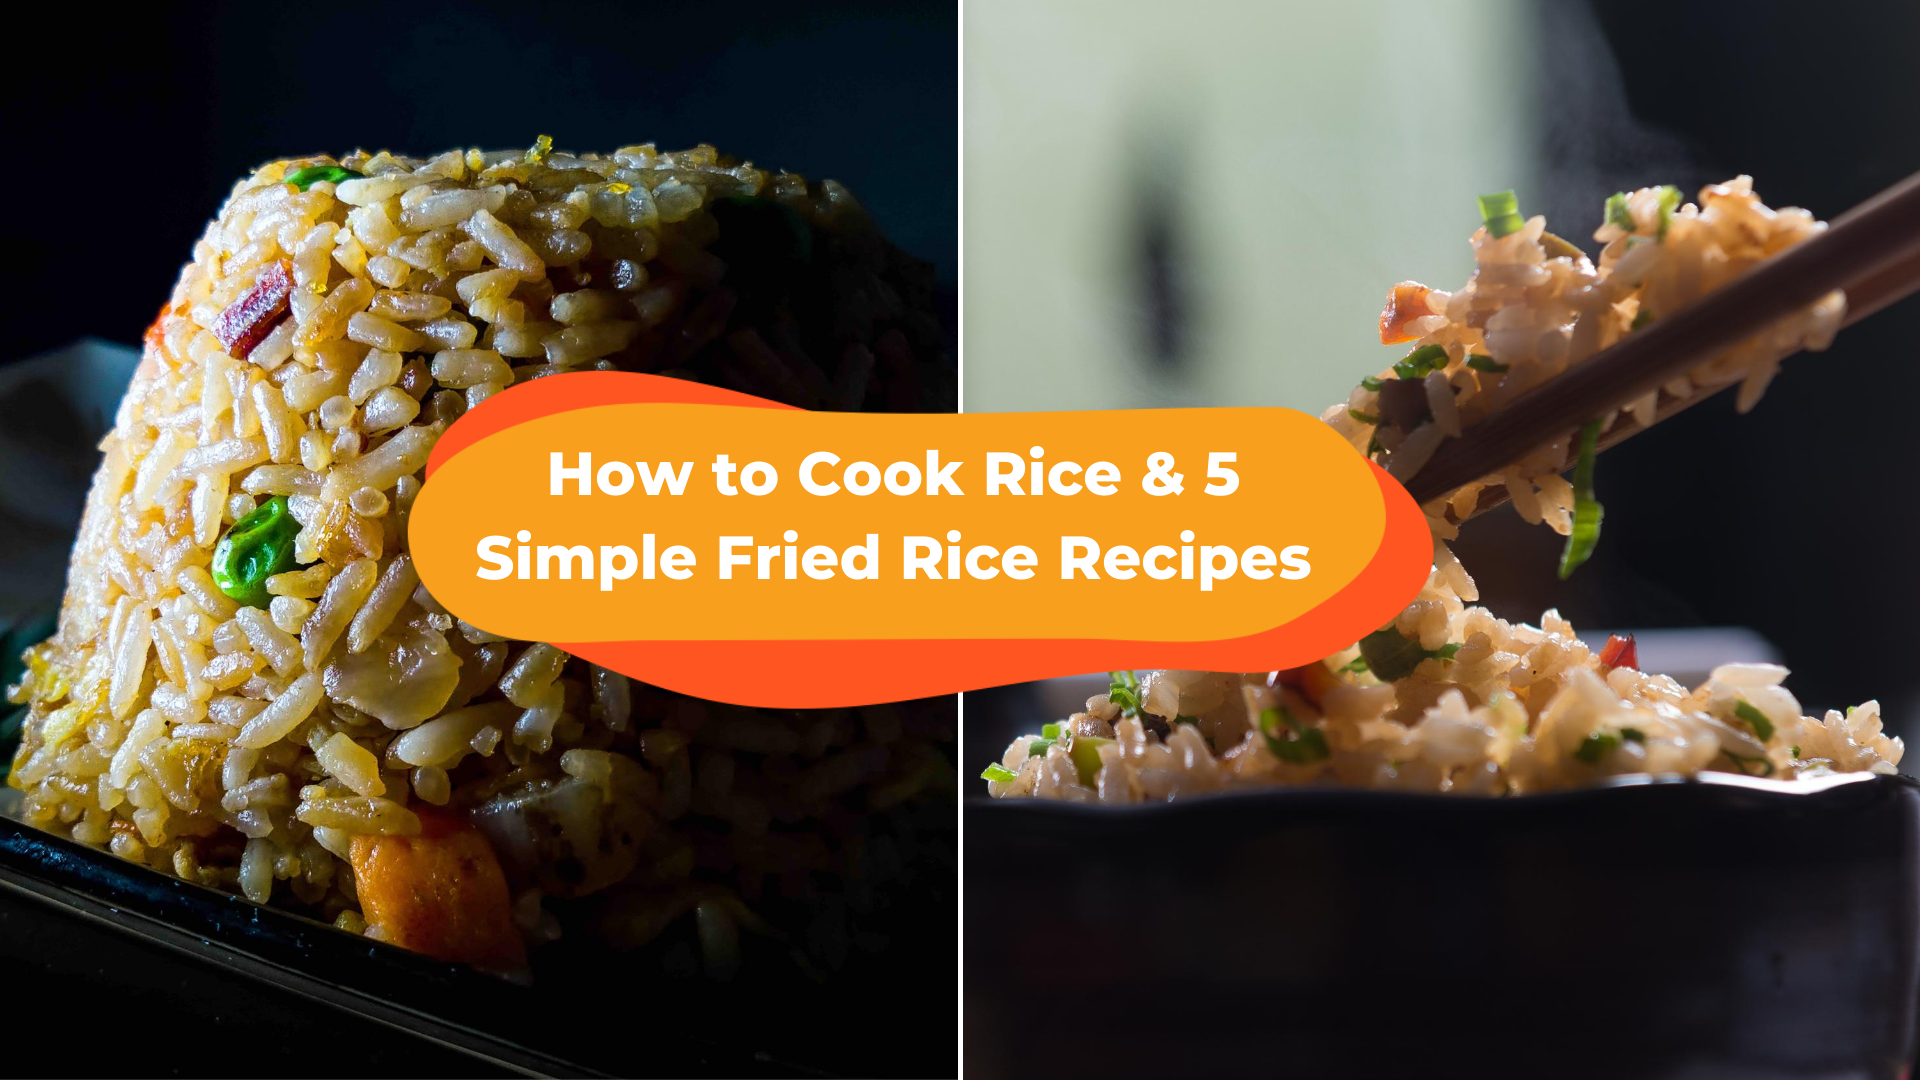 How To Cook Fried Rice The Right Way and 5 Simple Recipes That'll Get You on BBC Food